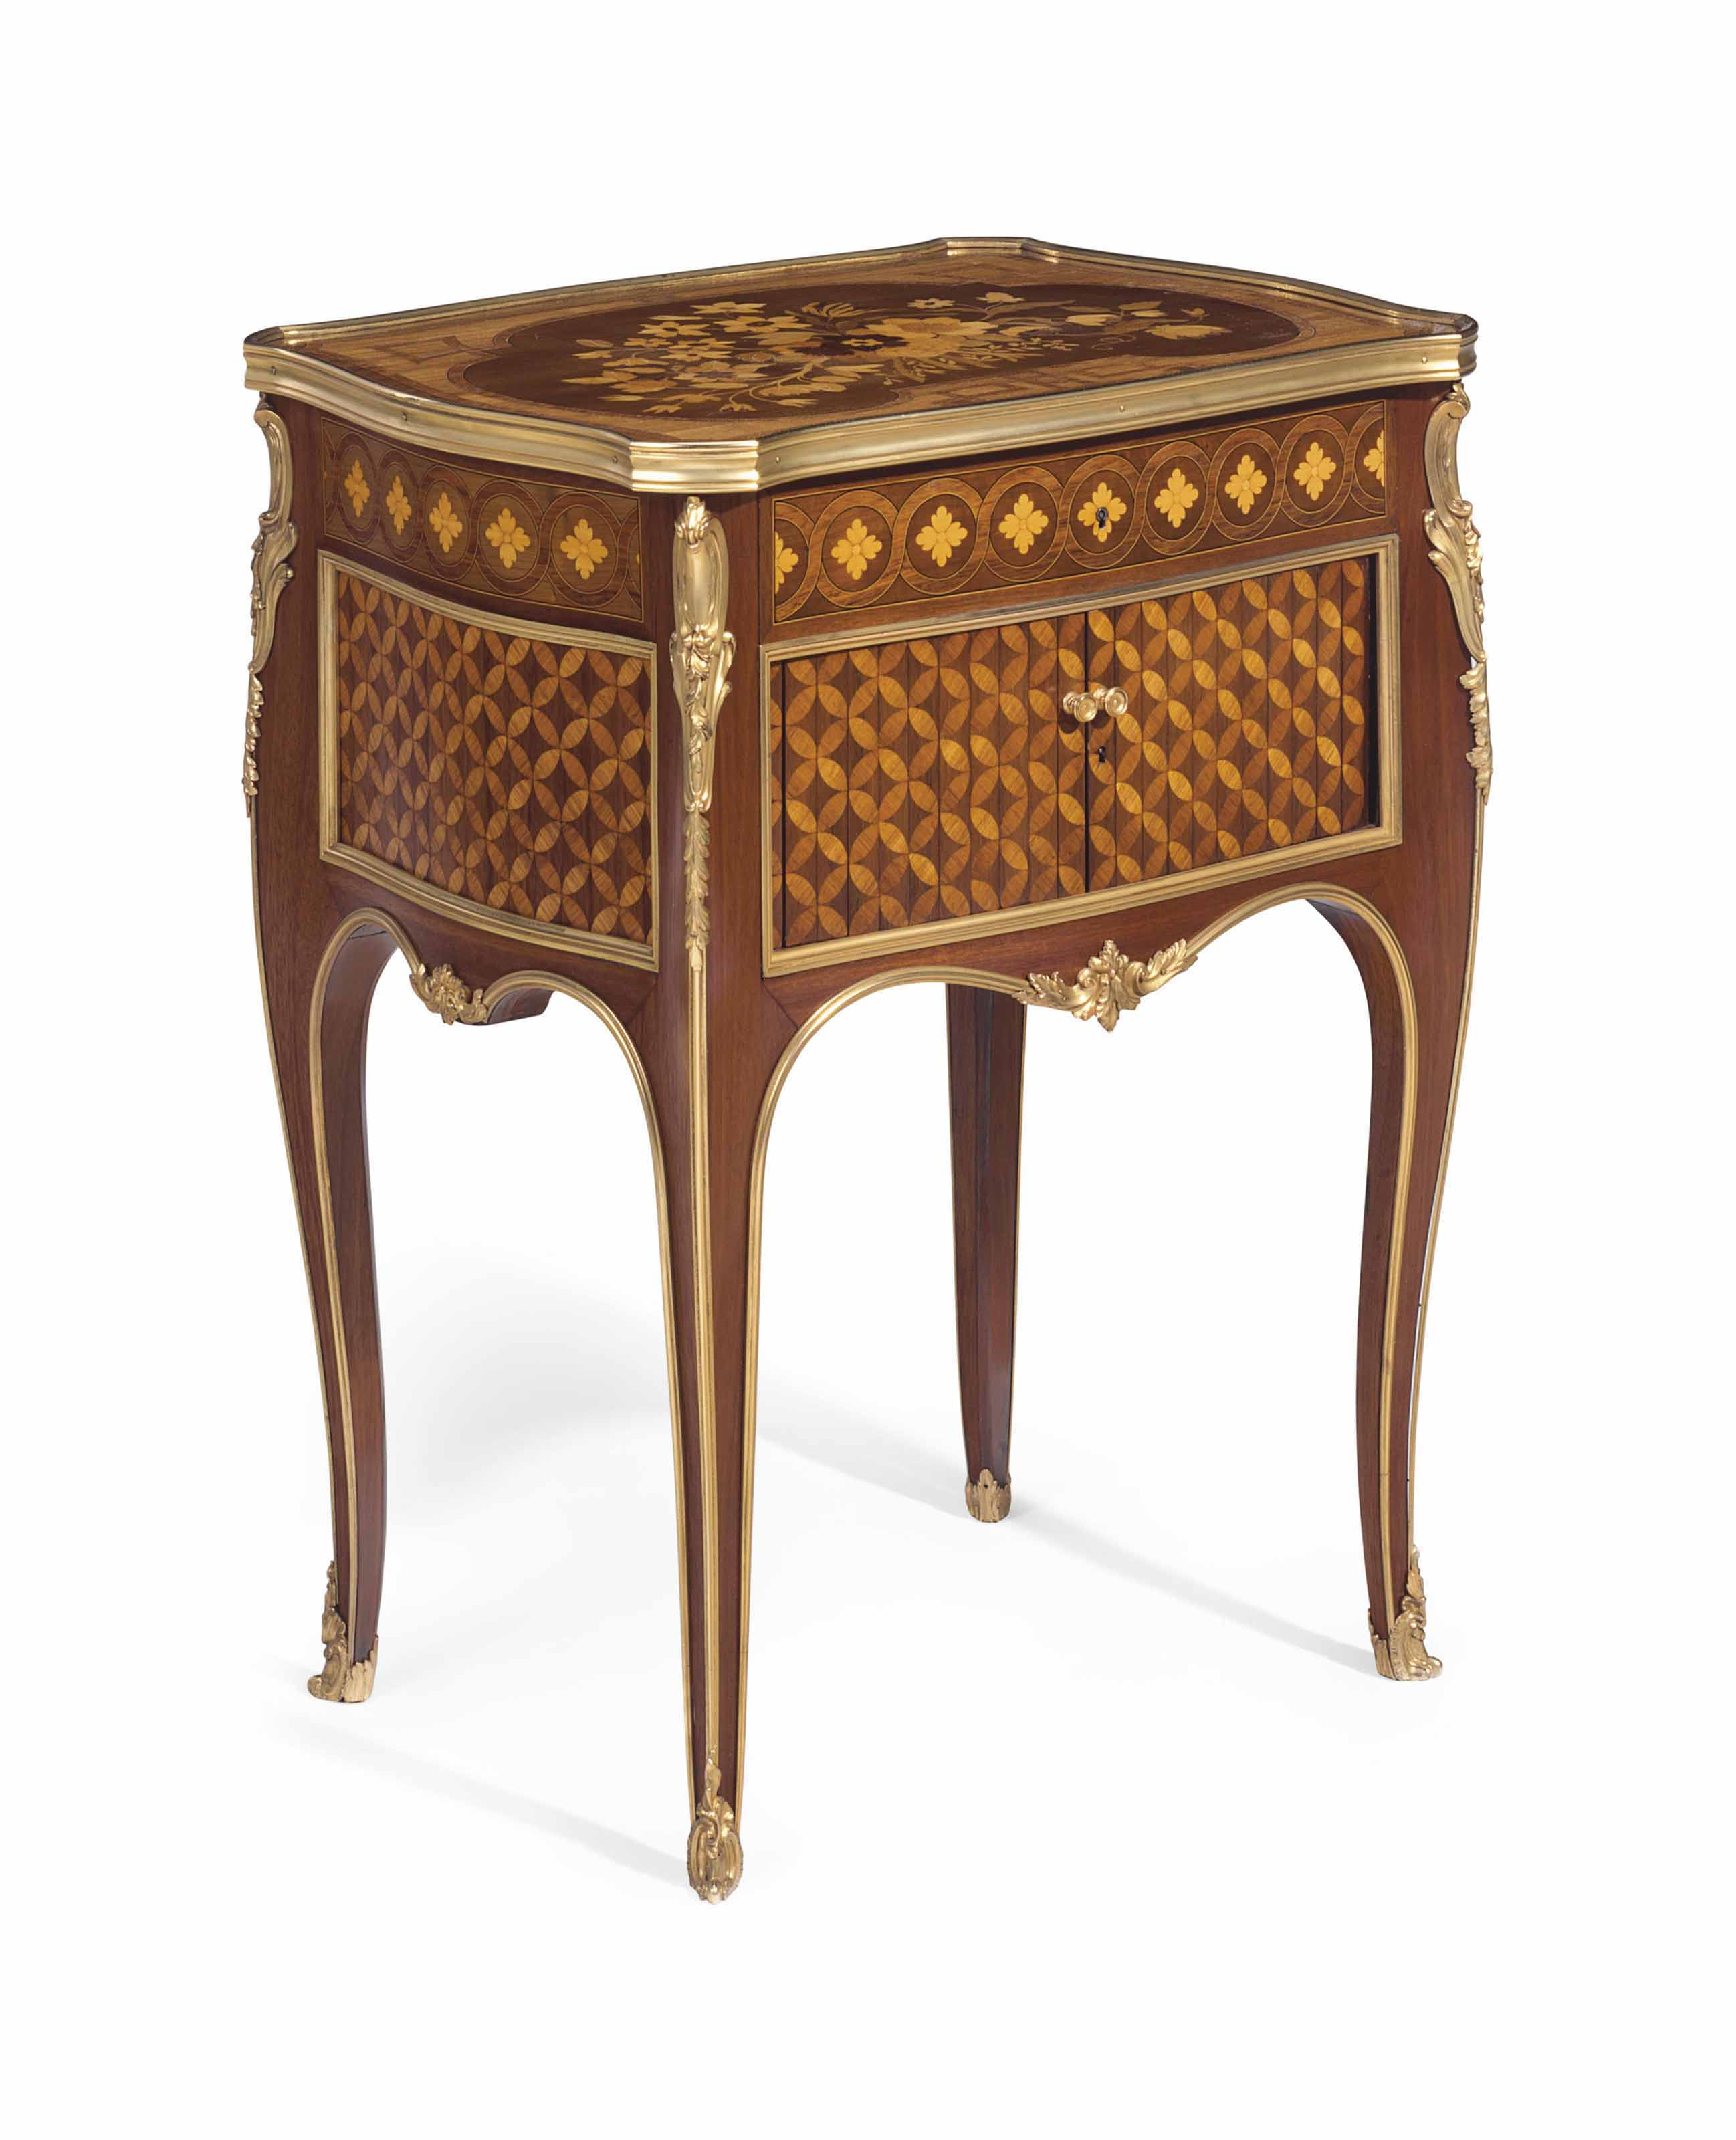 A FRENCH ORMOLU-MOUNTED MAHOGANY, TULIPWOOD, SYCAMORE MARQUETRY AND PARQUETRY TABLE DE NUIT